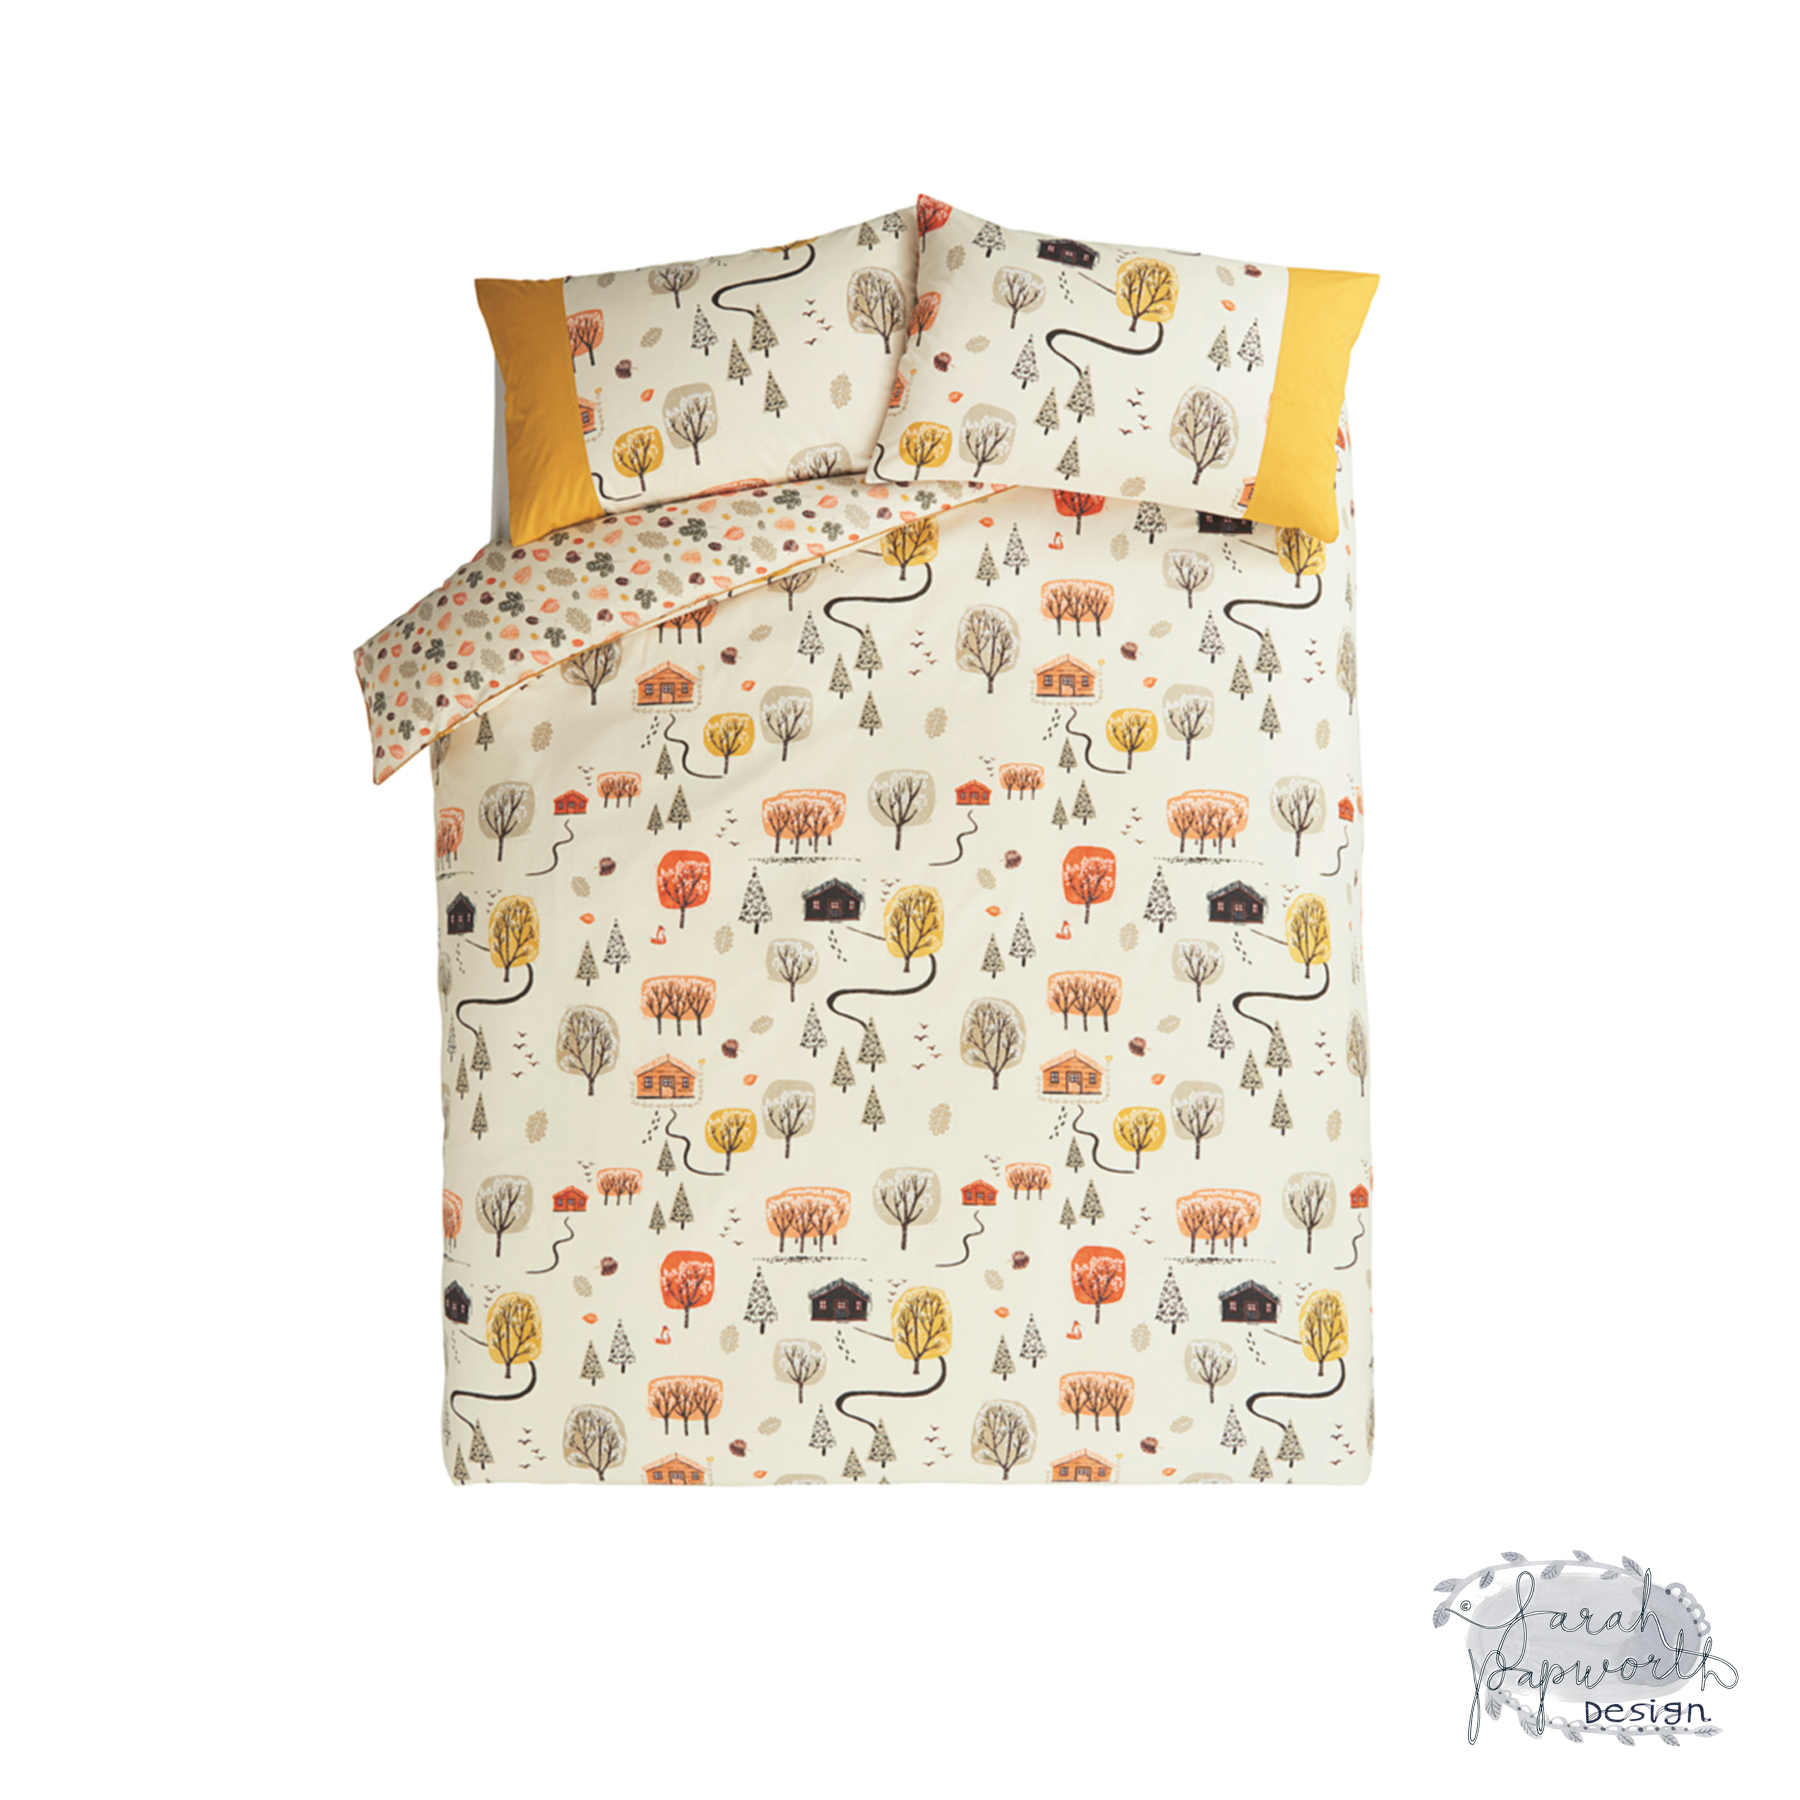 woodland-log-cabin-print-pattern-for-asda-by-sarah-papworth.png